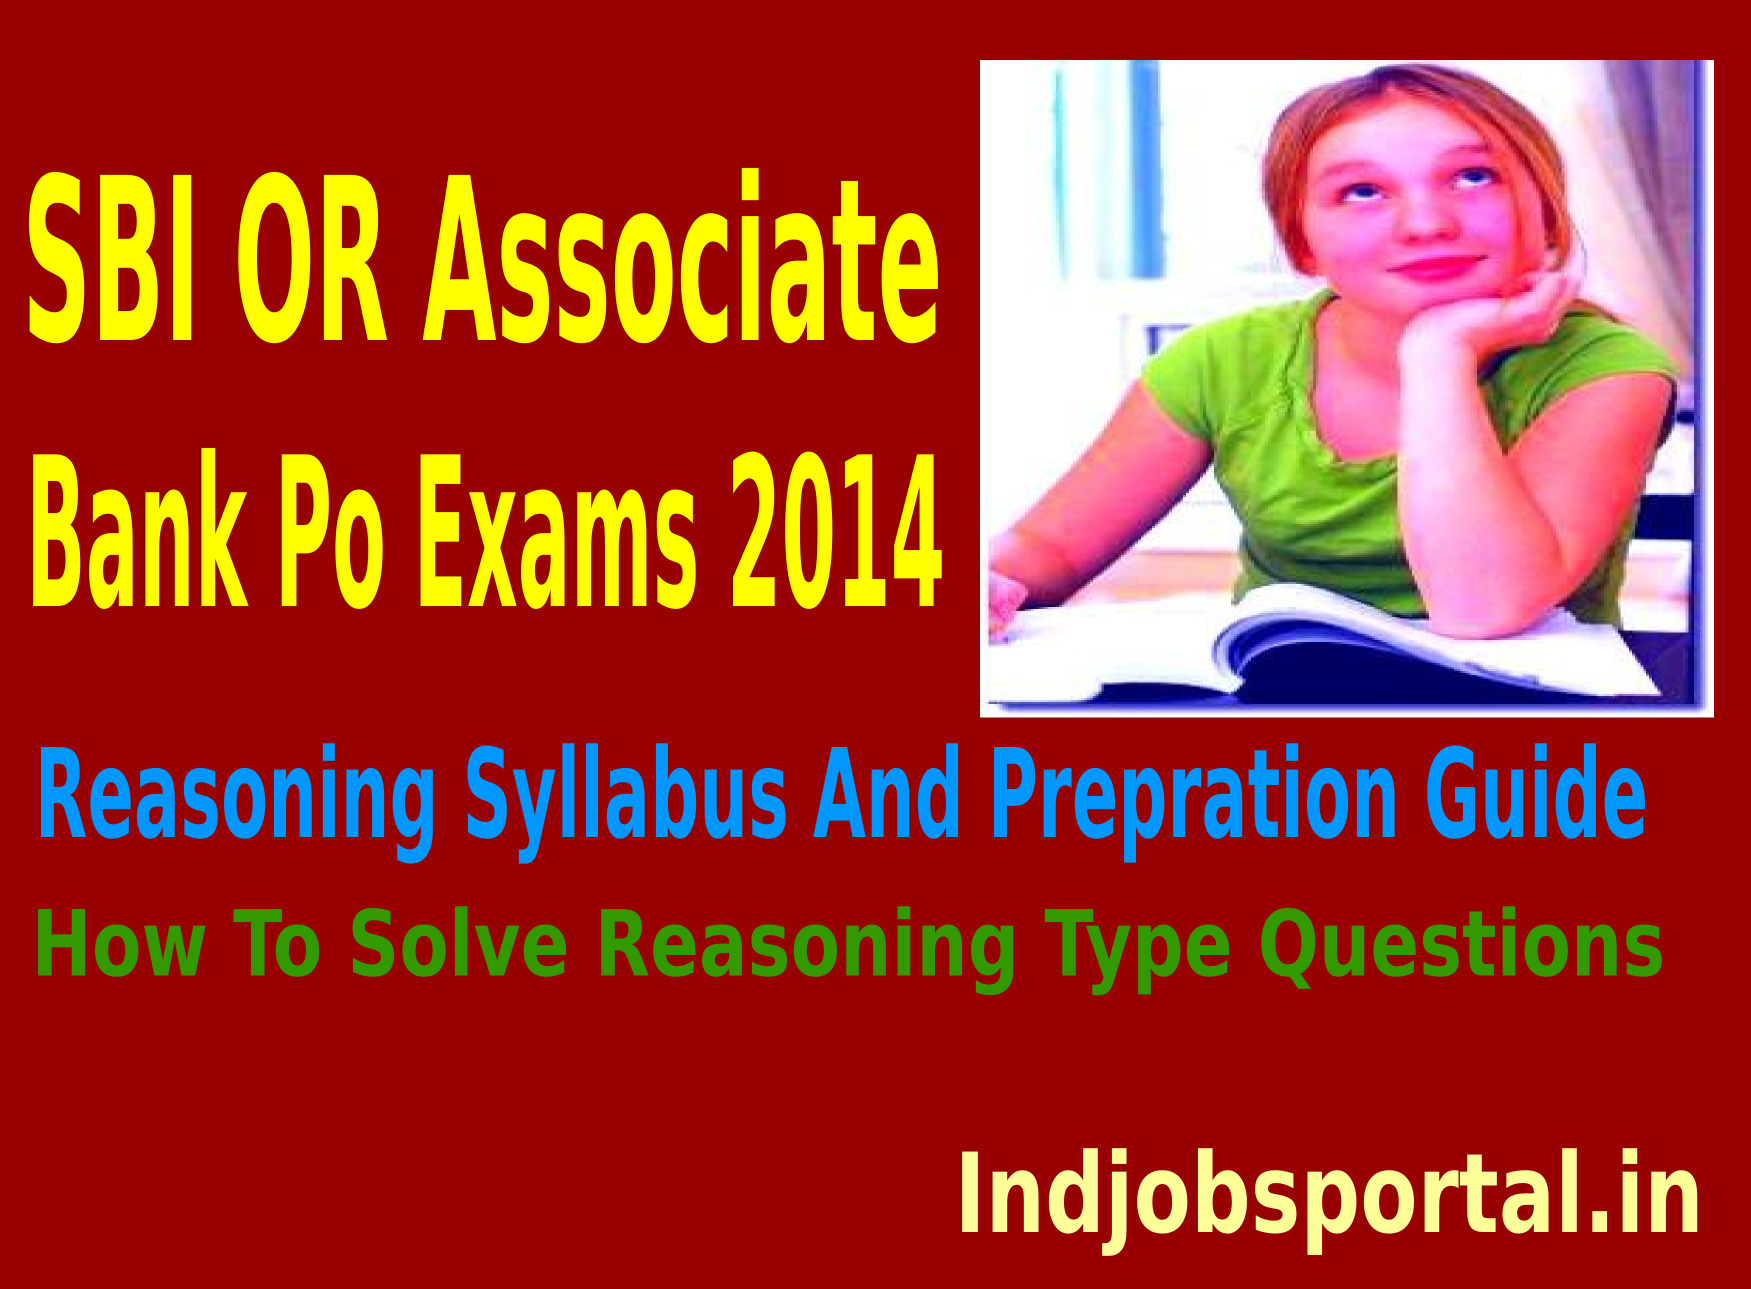 sbi associate po exams 2014 reasoning question how to solve